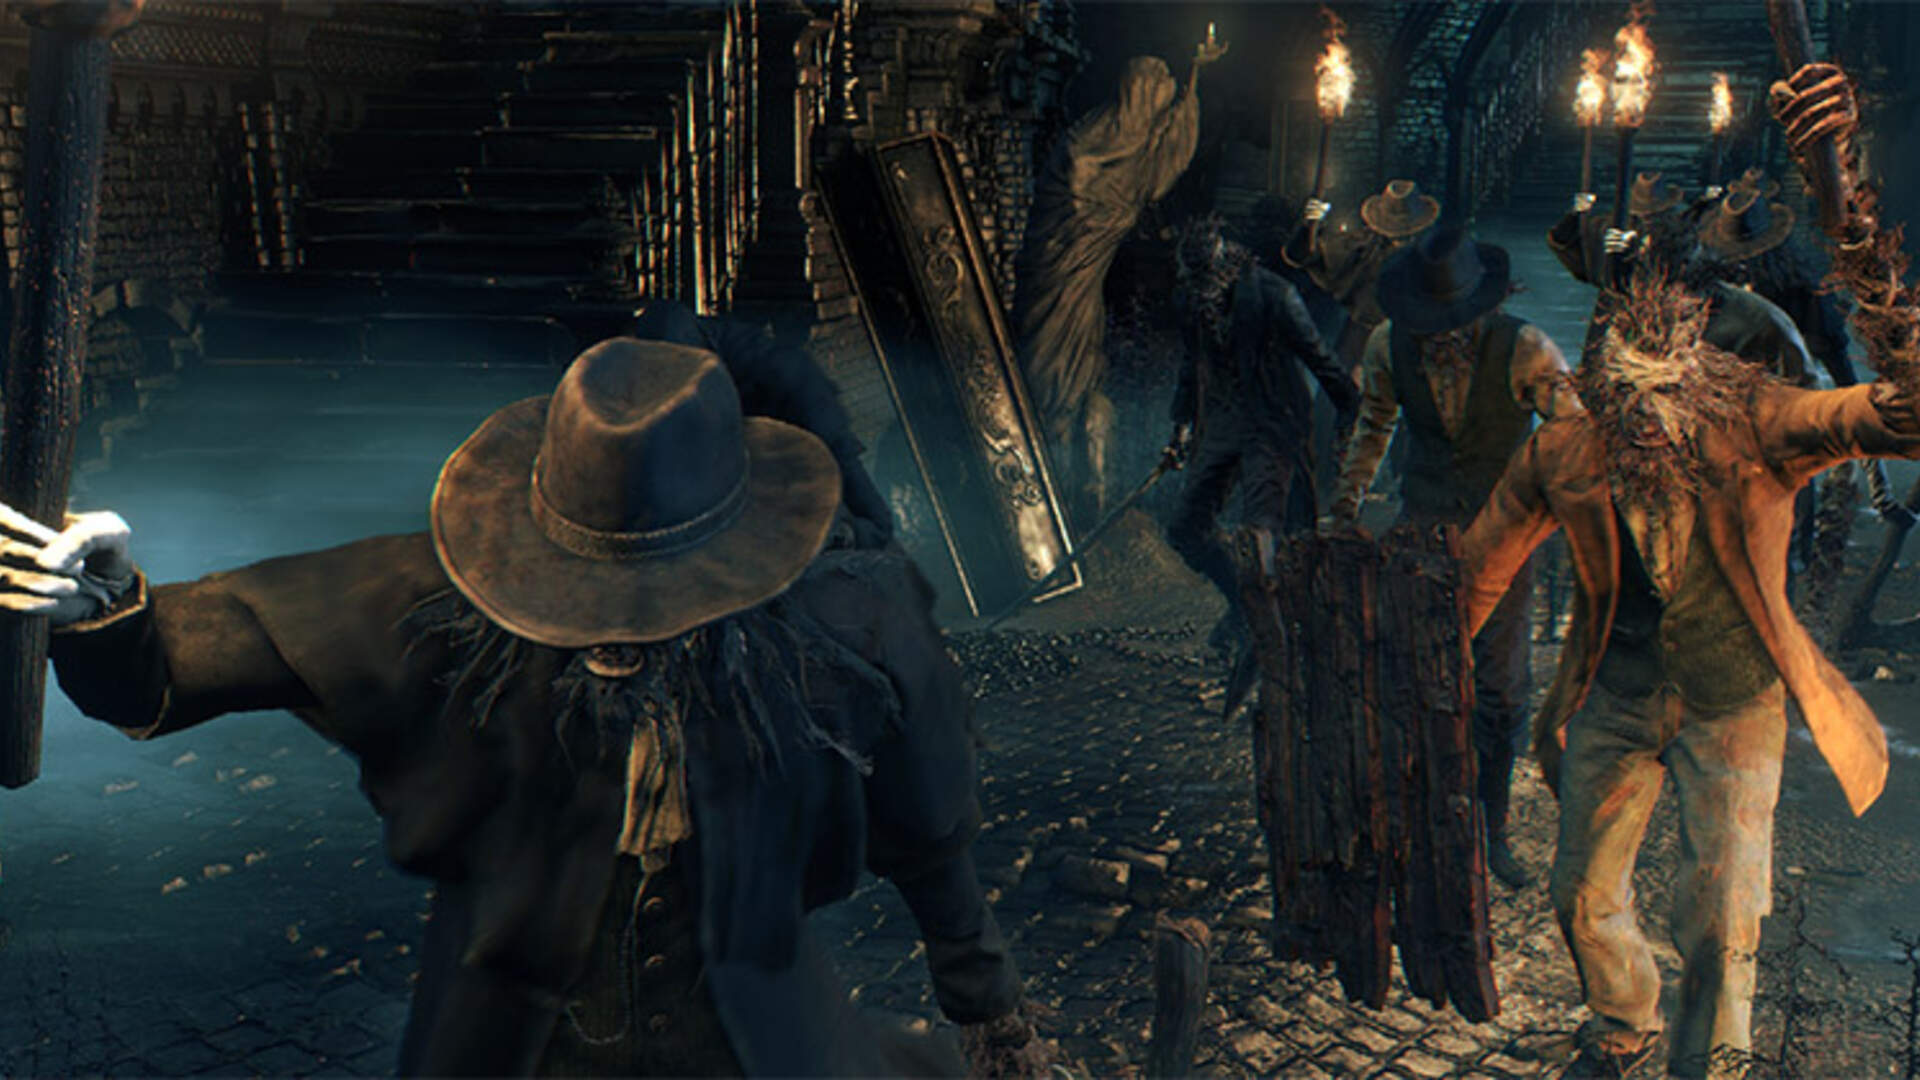 """The Case for Bloodborne and Other Games that """"Aren't for Everyone"""""""